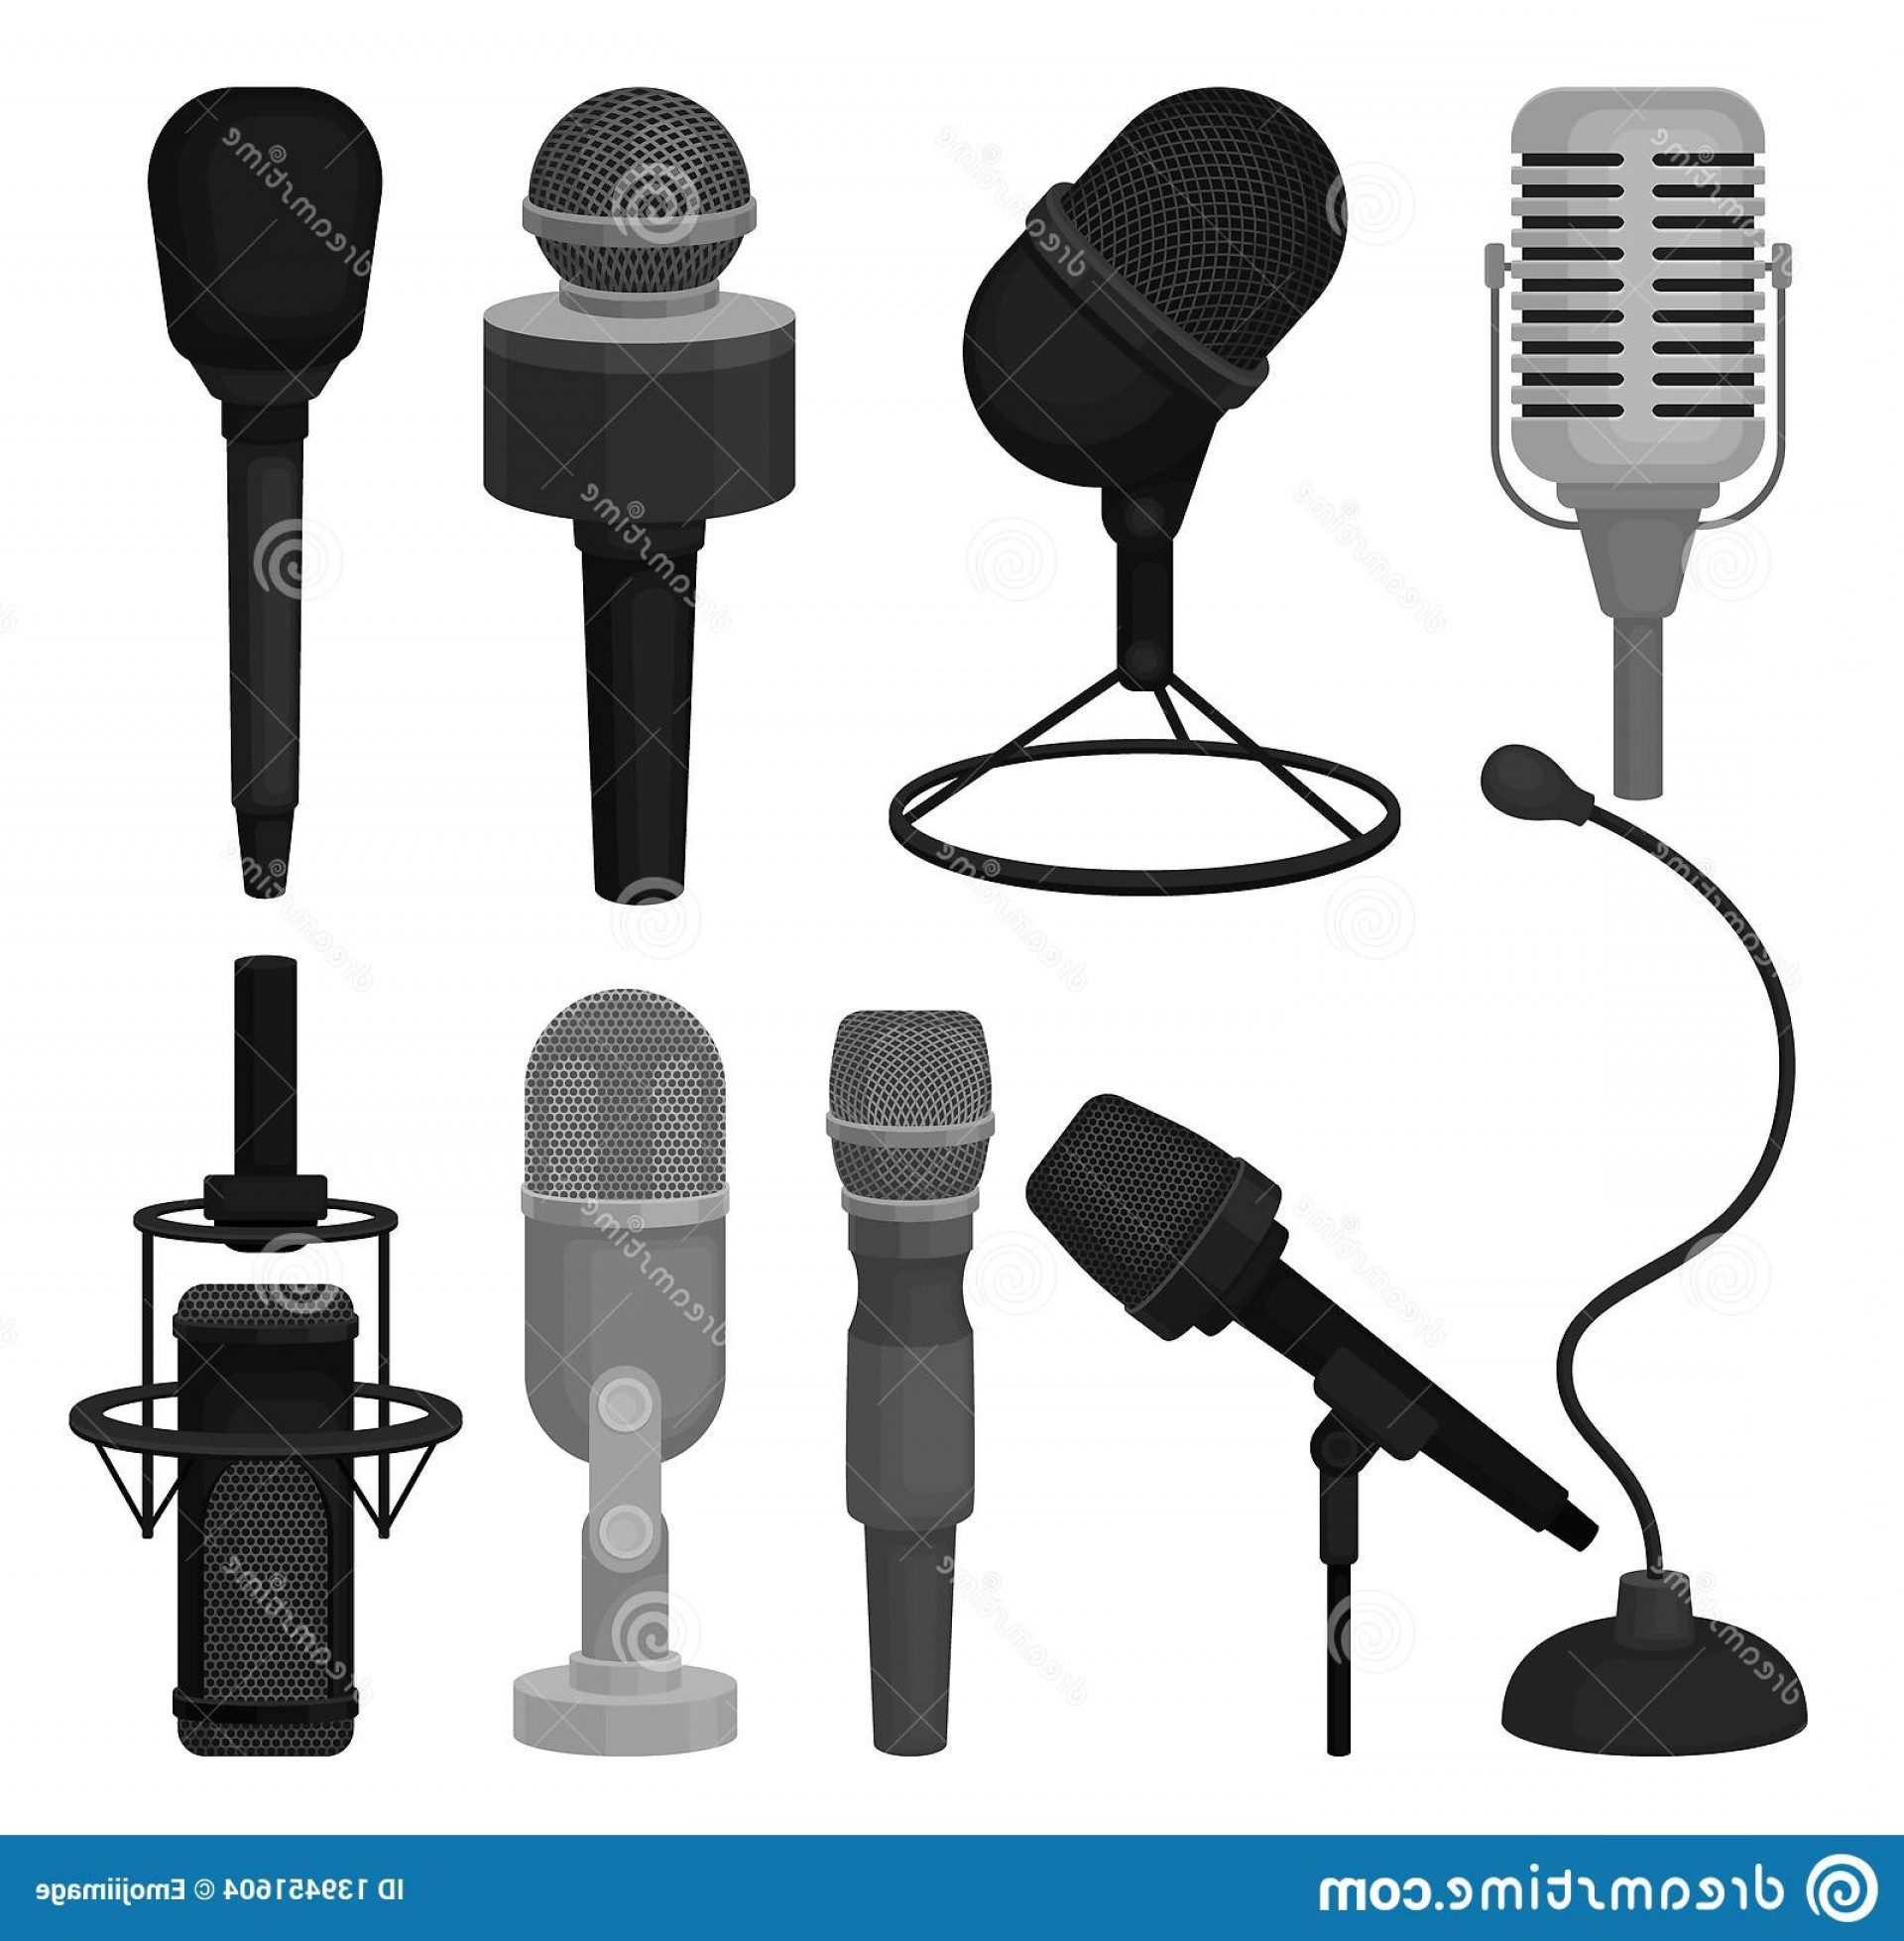 Mics Vector Designs: Collection Different Microphones Professional Dynamic Condenser Mics Sound Equipment Devices Recording Voice Colorful Image